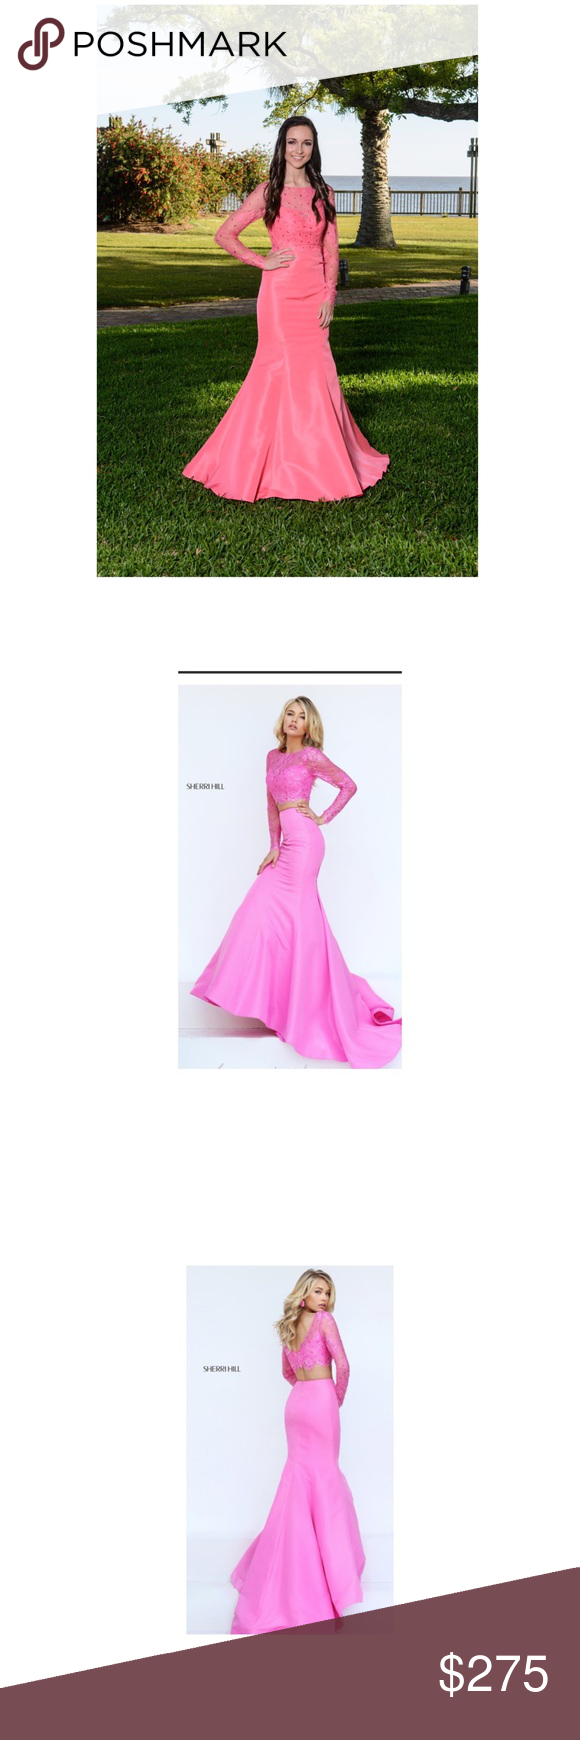 Sherri hill prom dress sherri hill prom dresses pink dresses and prom